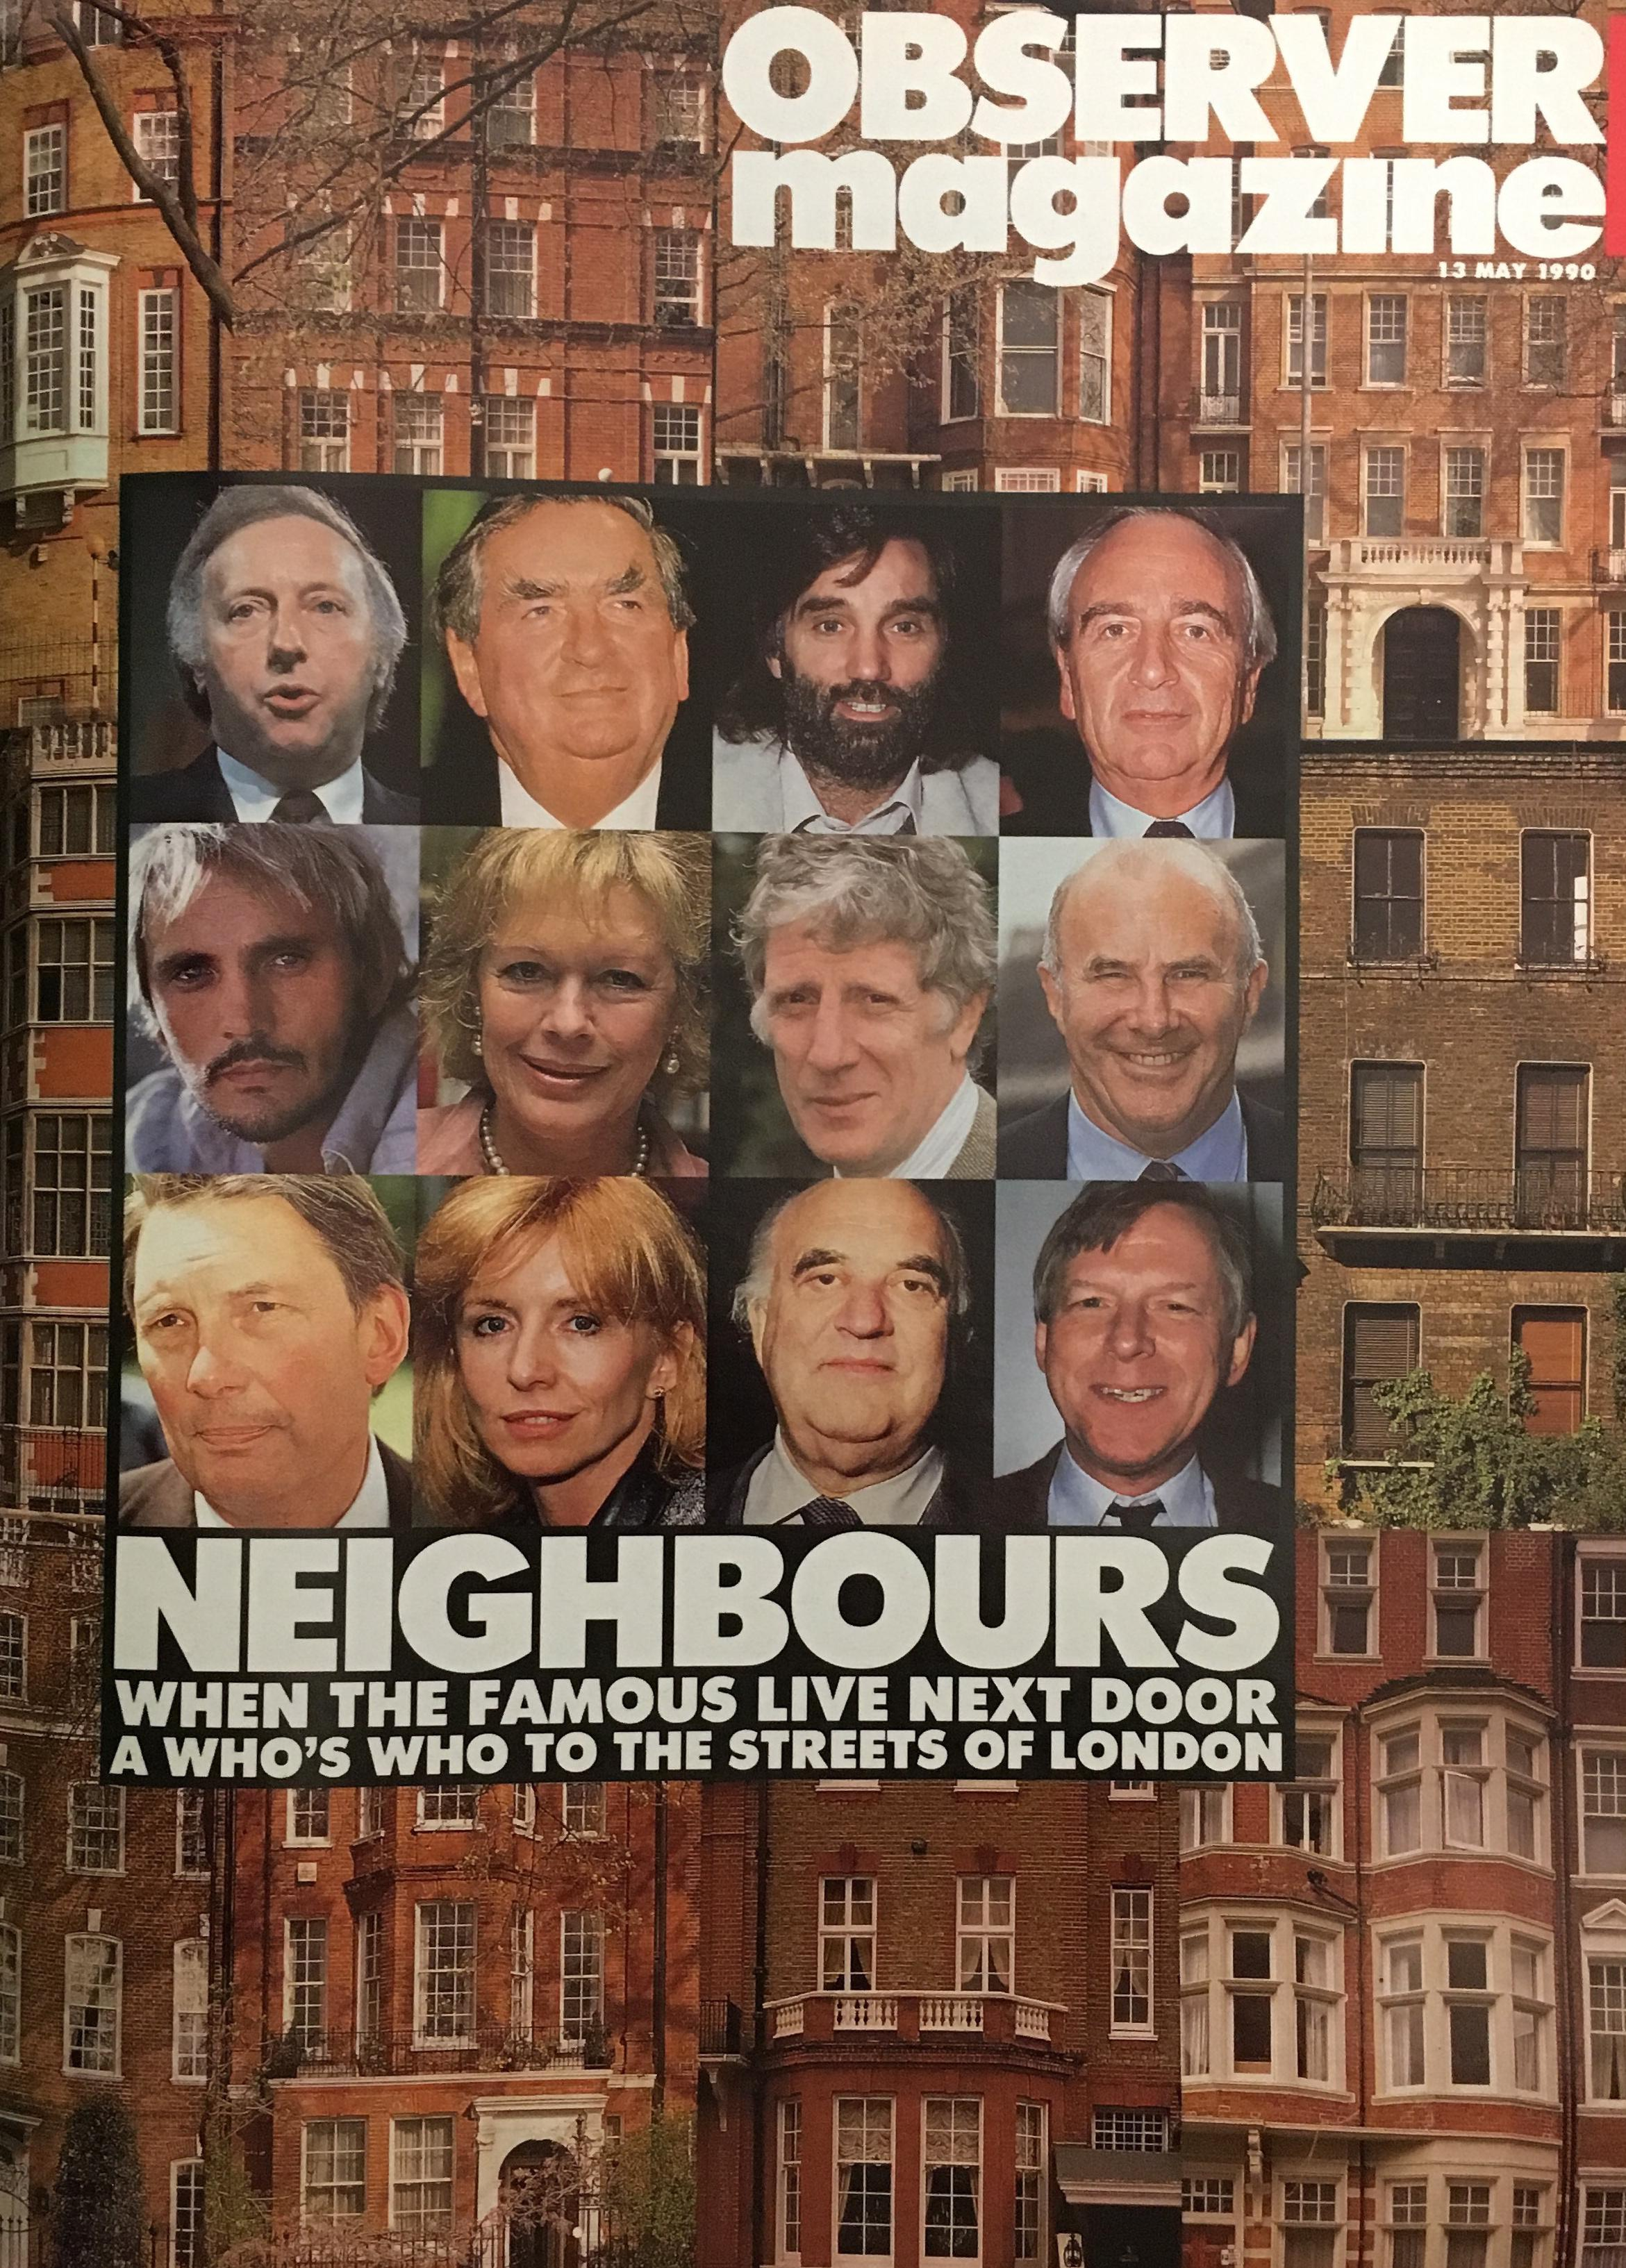 From the archive: is your neighbour famous?